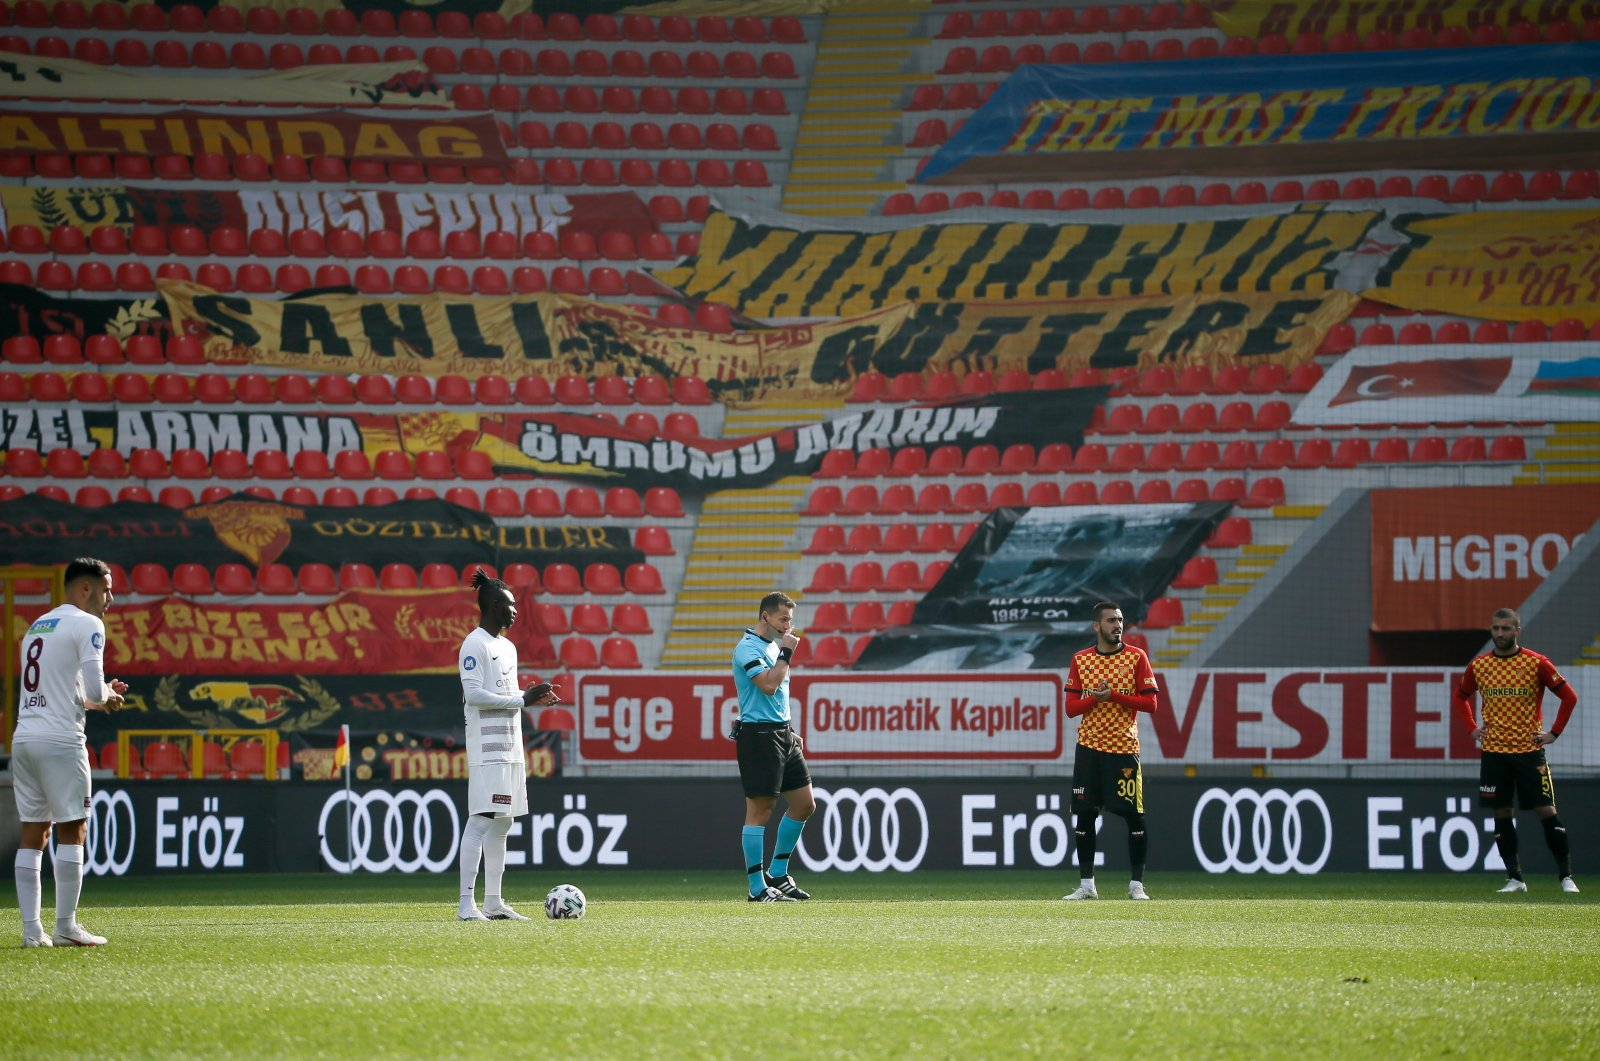 Players of Turkish Süper Lig clubs Göztepe and Atakaş Hatayspor wait in protest against the broadcaster after the starting whistle in Week 13 match at the Gürsel Aksel Stadium in Izmir, western Turkey, Dec. 19, 2020. (AA Photo)